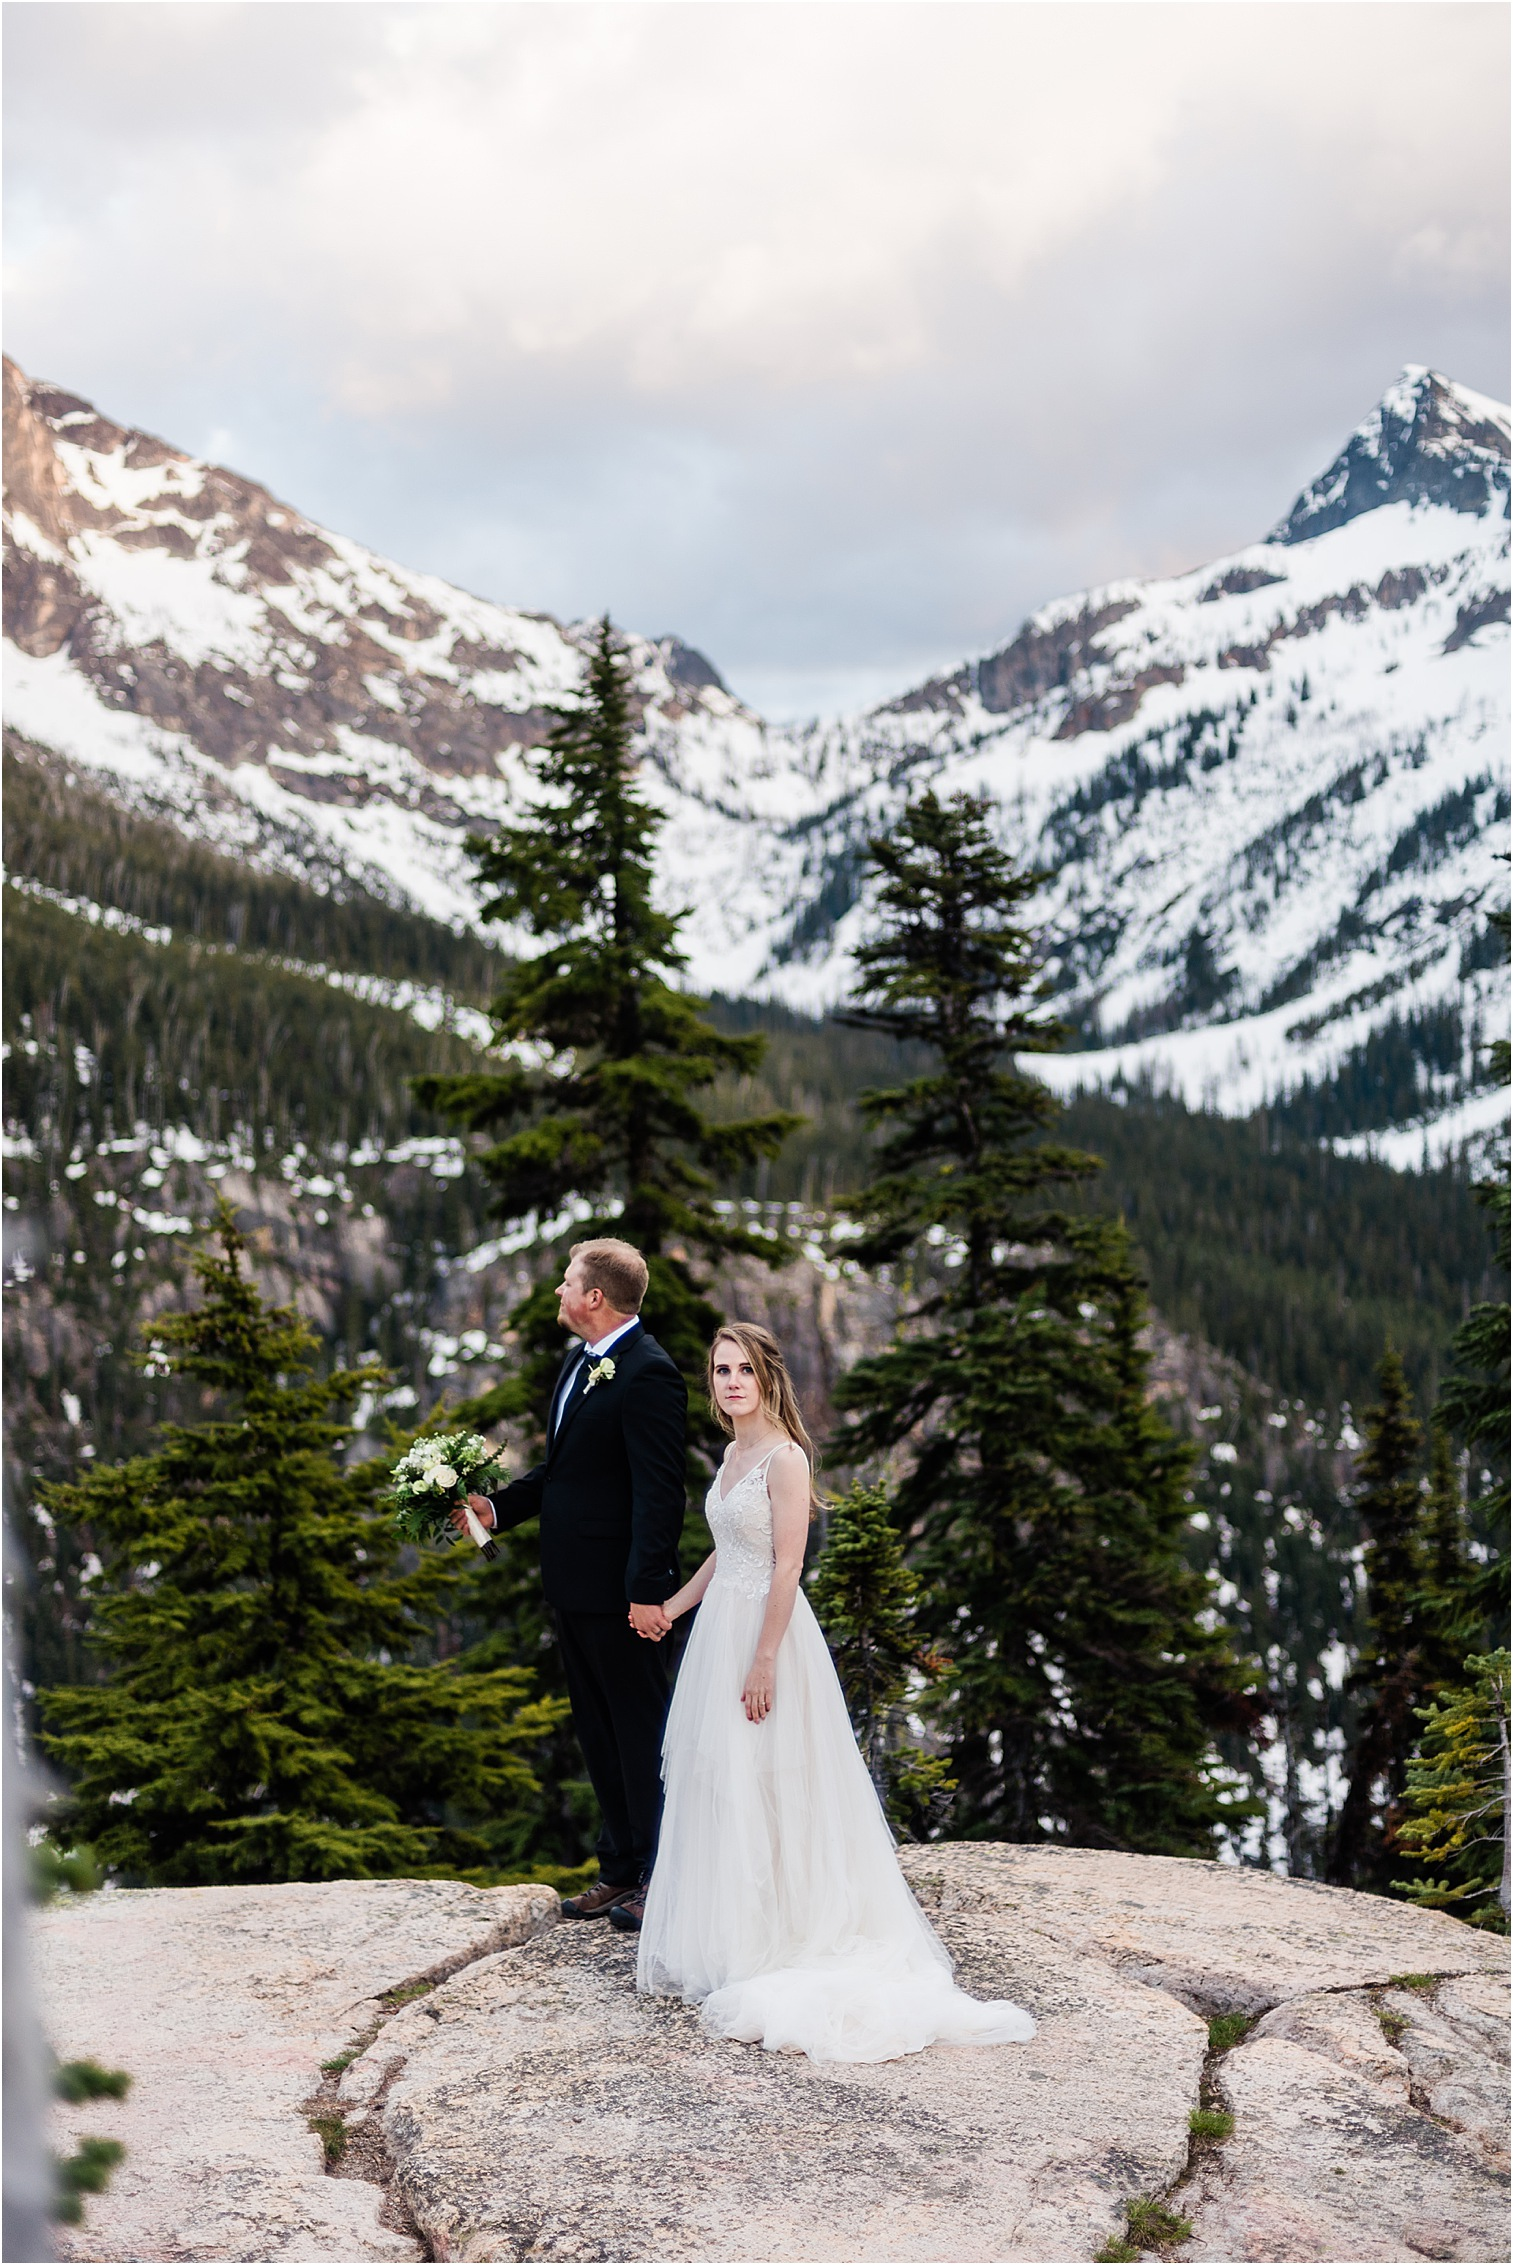 Hope & Steven enjoying Washington Pass overlook during their Adventure Wedding in North Cascades National Park. Image by Forthright Photo, Seattle Wedding & Elopement Photographers